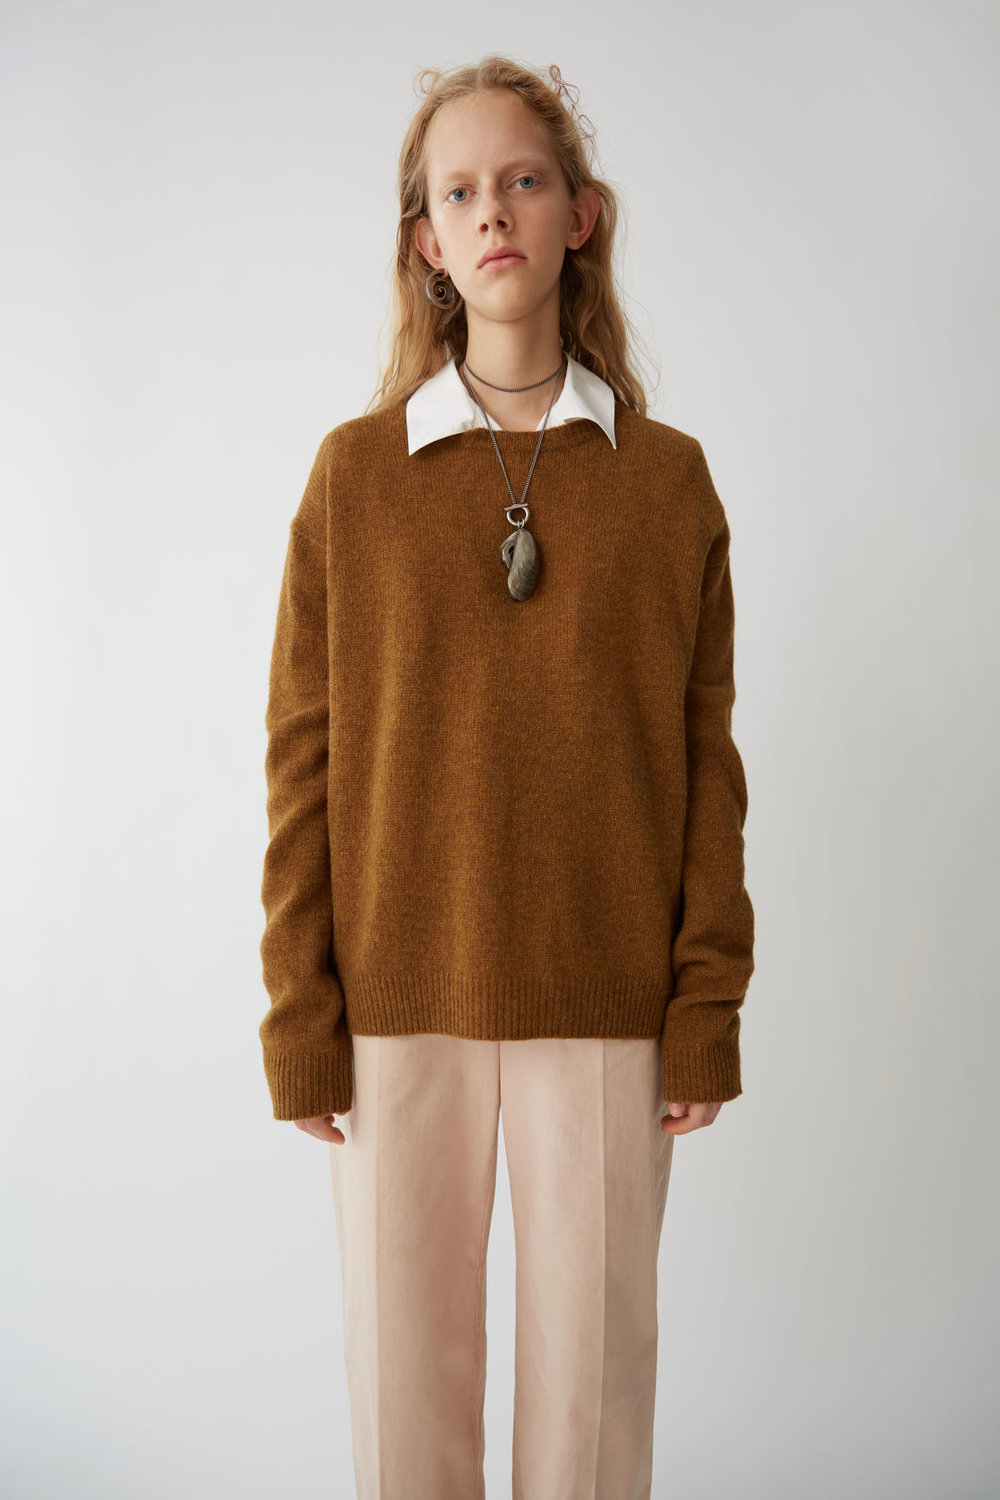 acne studios wool pullover